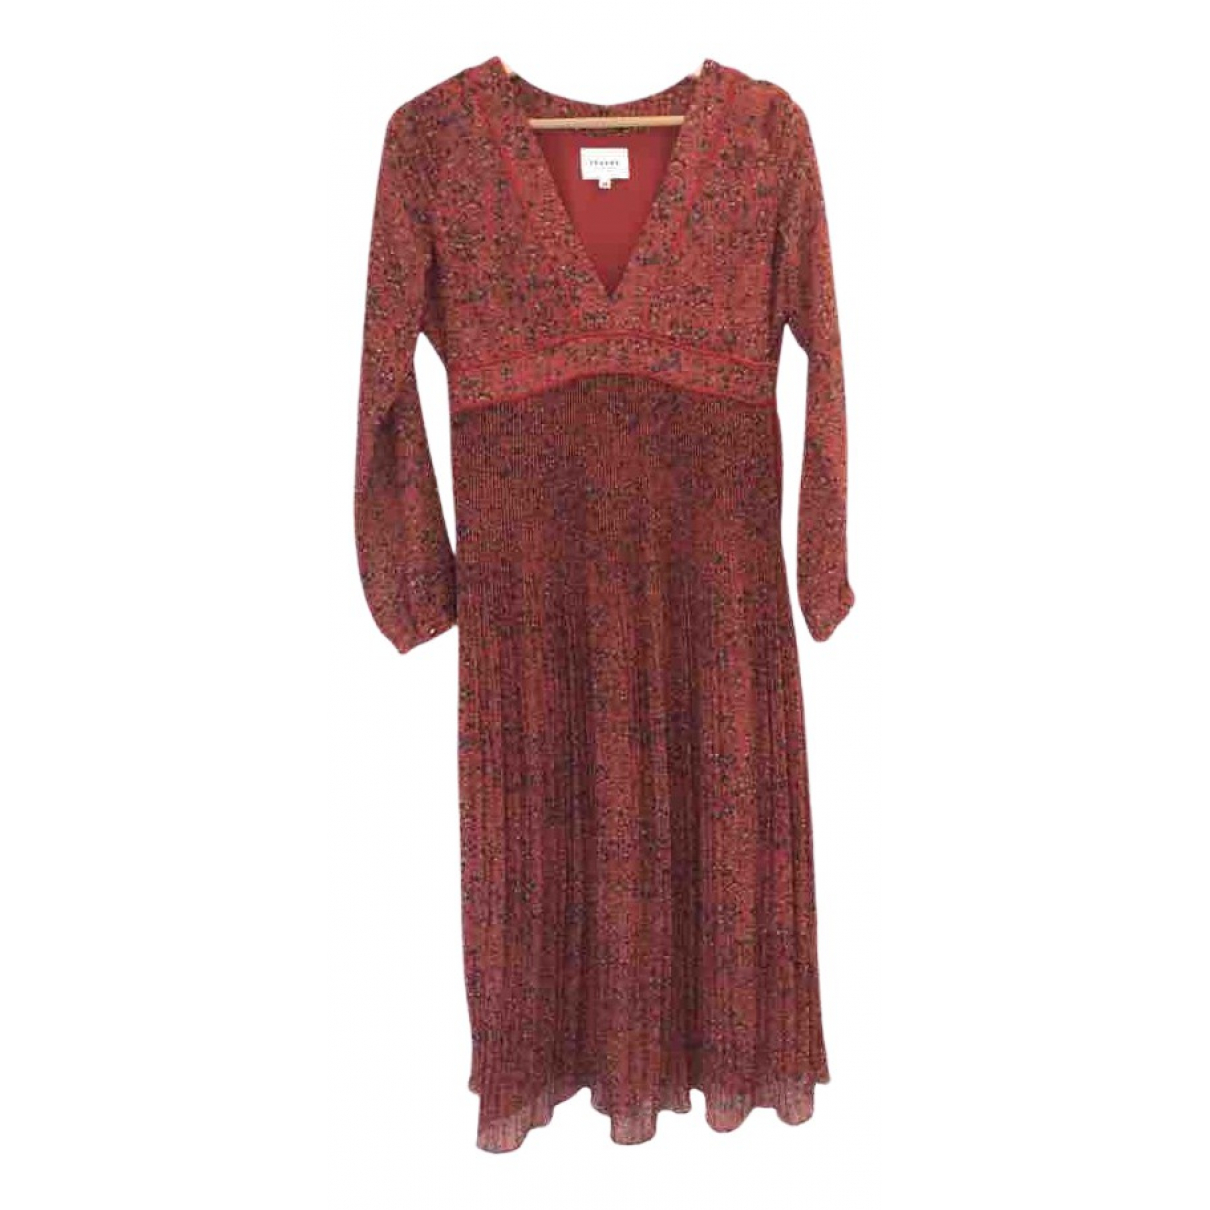 Sézane N Red dress for Women 36 FR